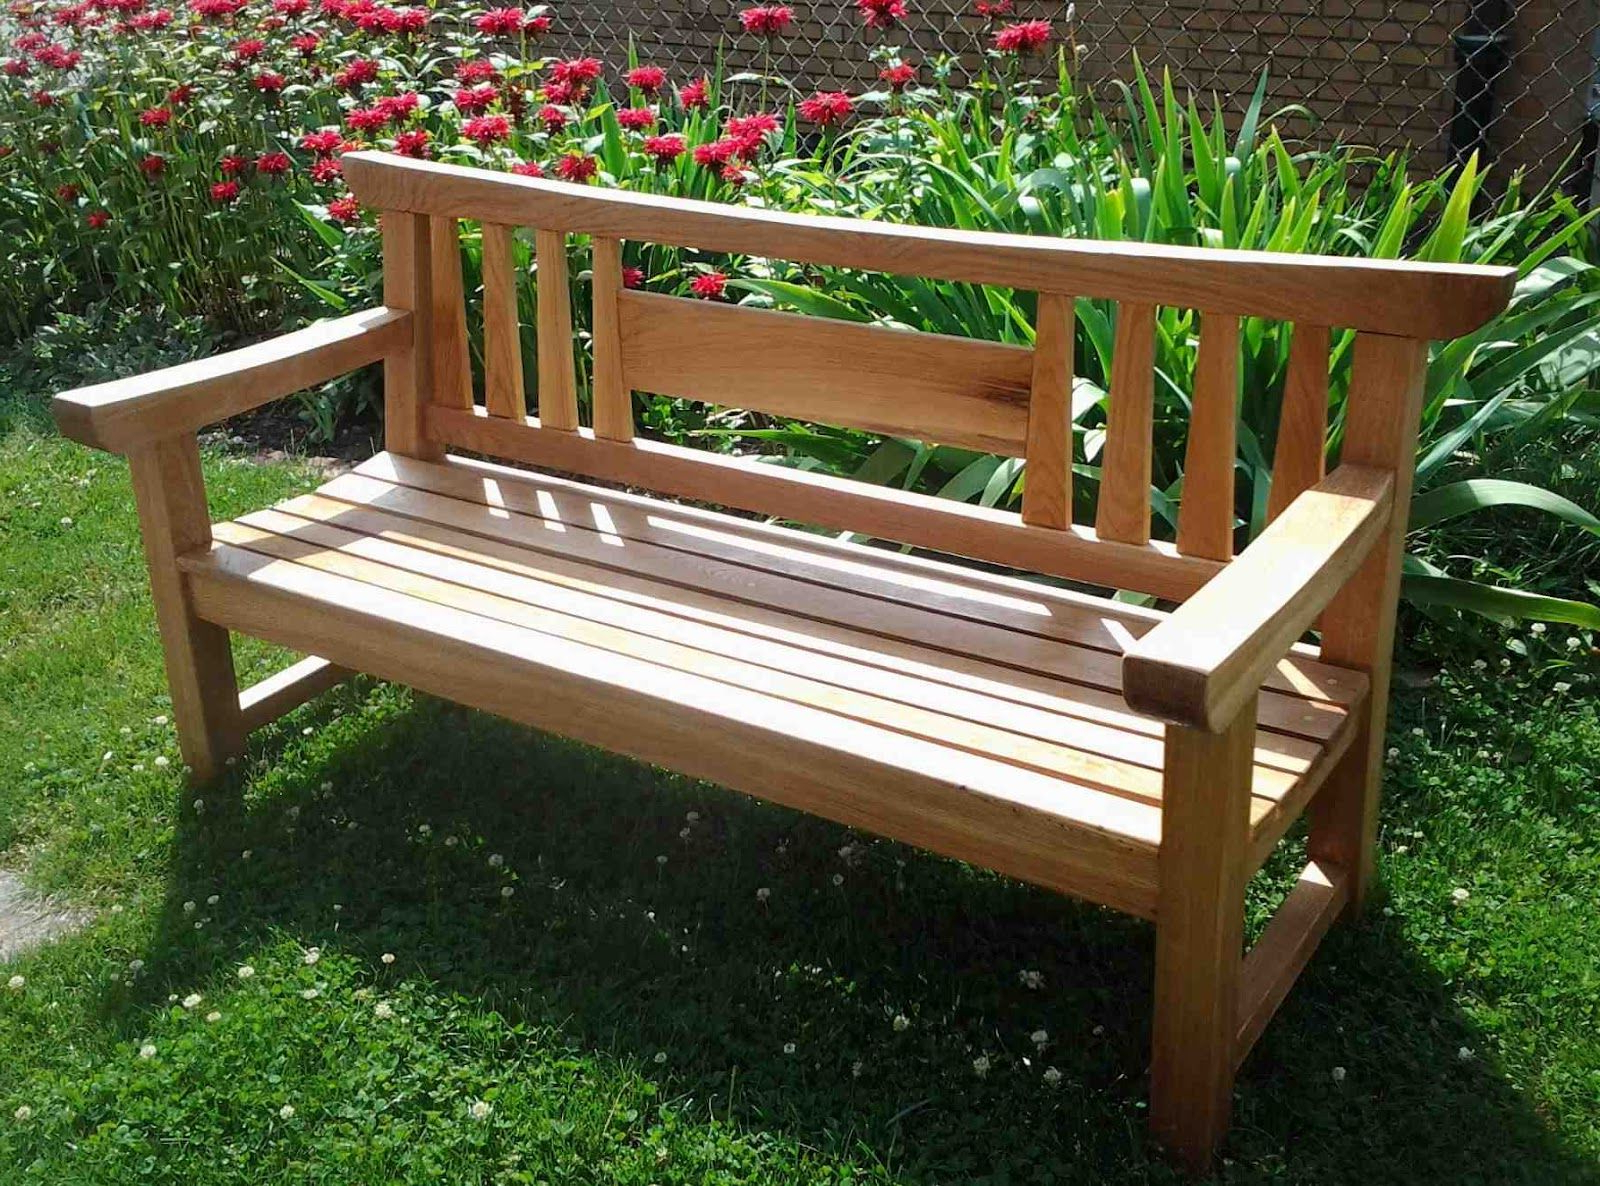 Outdoor Garden Storage Bench — Tedxoakville Home Design Blog Within 2019 Bence Plastic Outdoor Garden Benches (View 17 of 25)